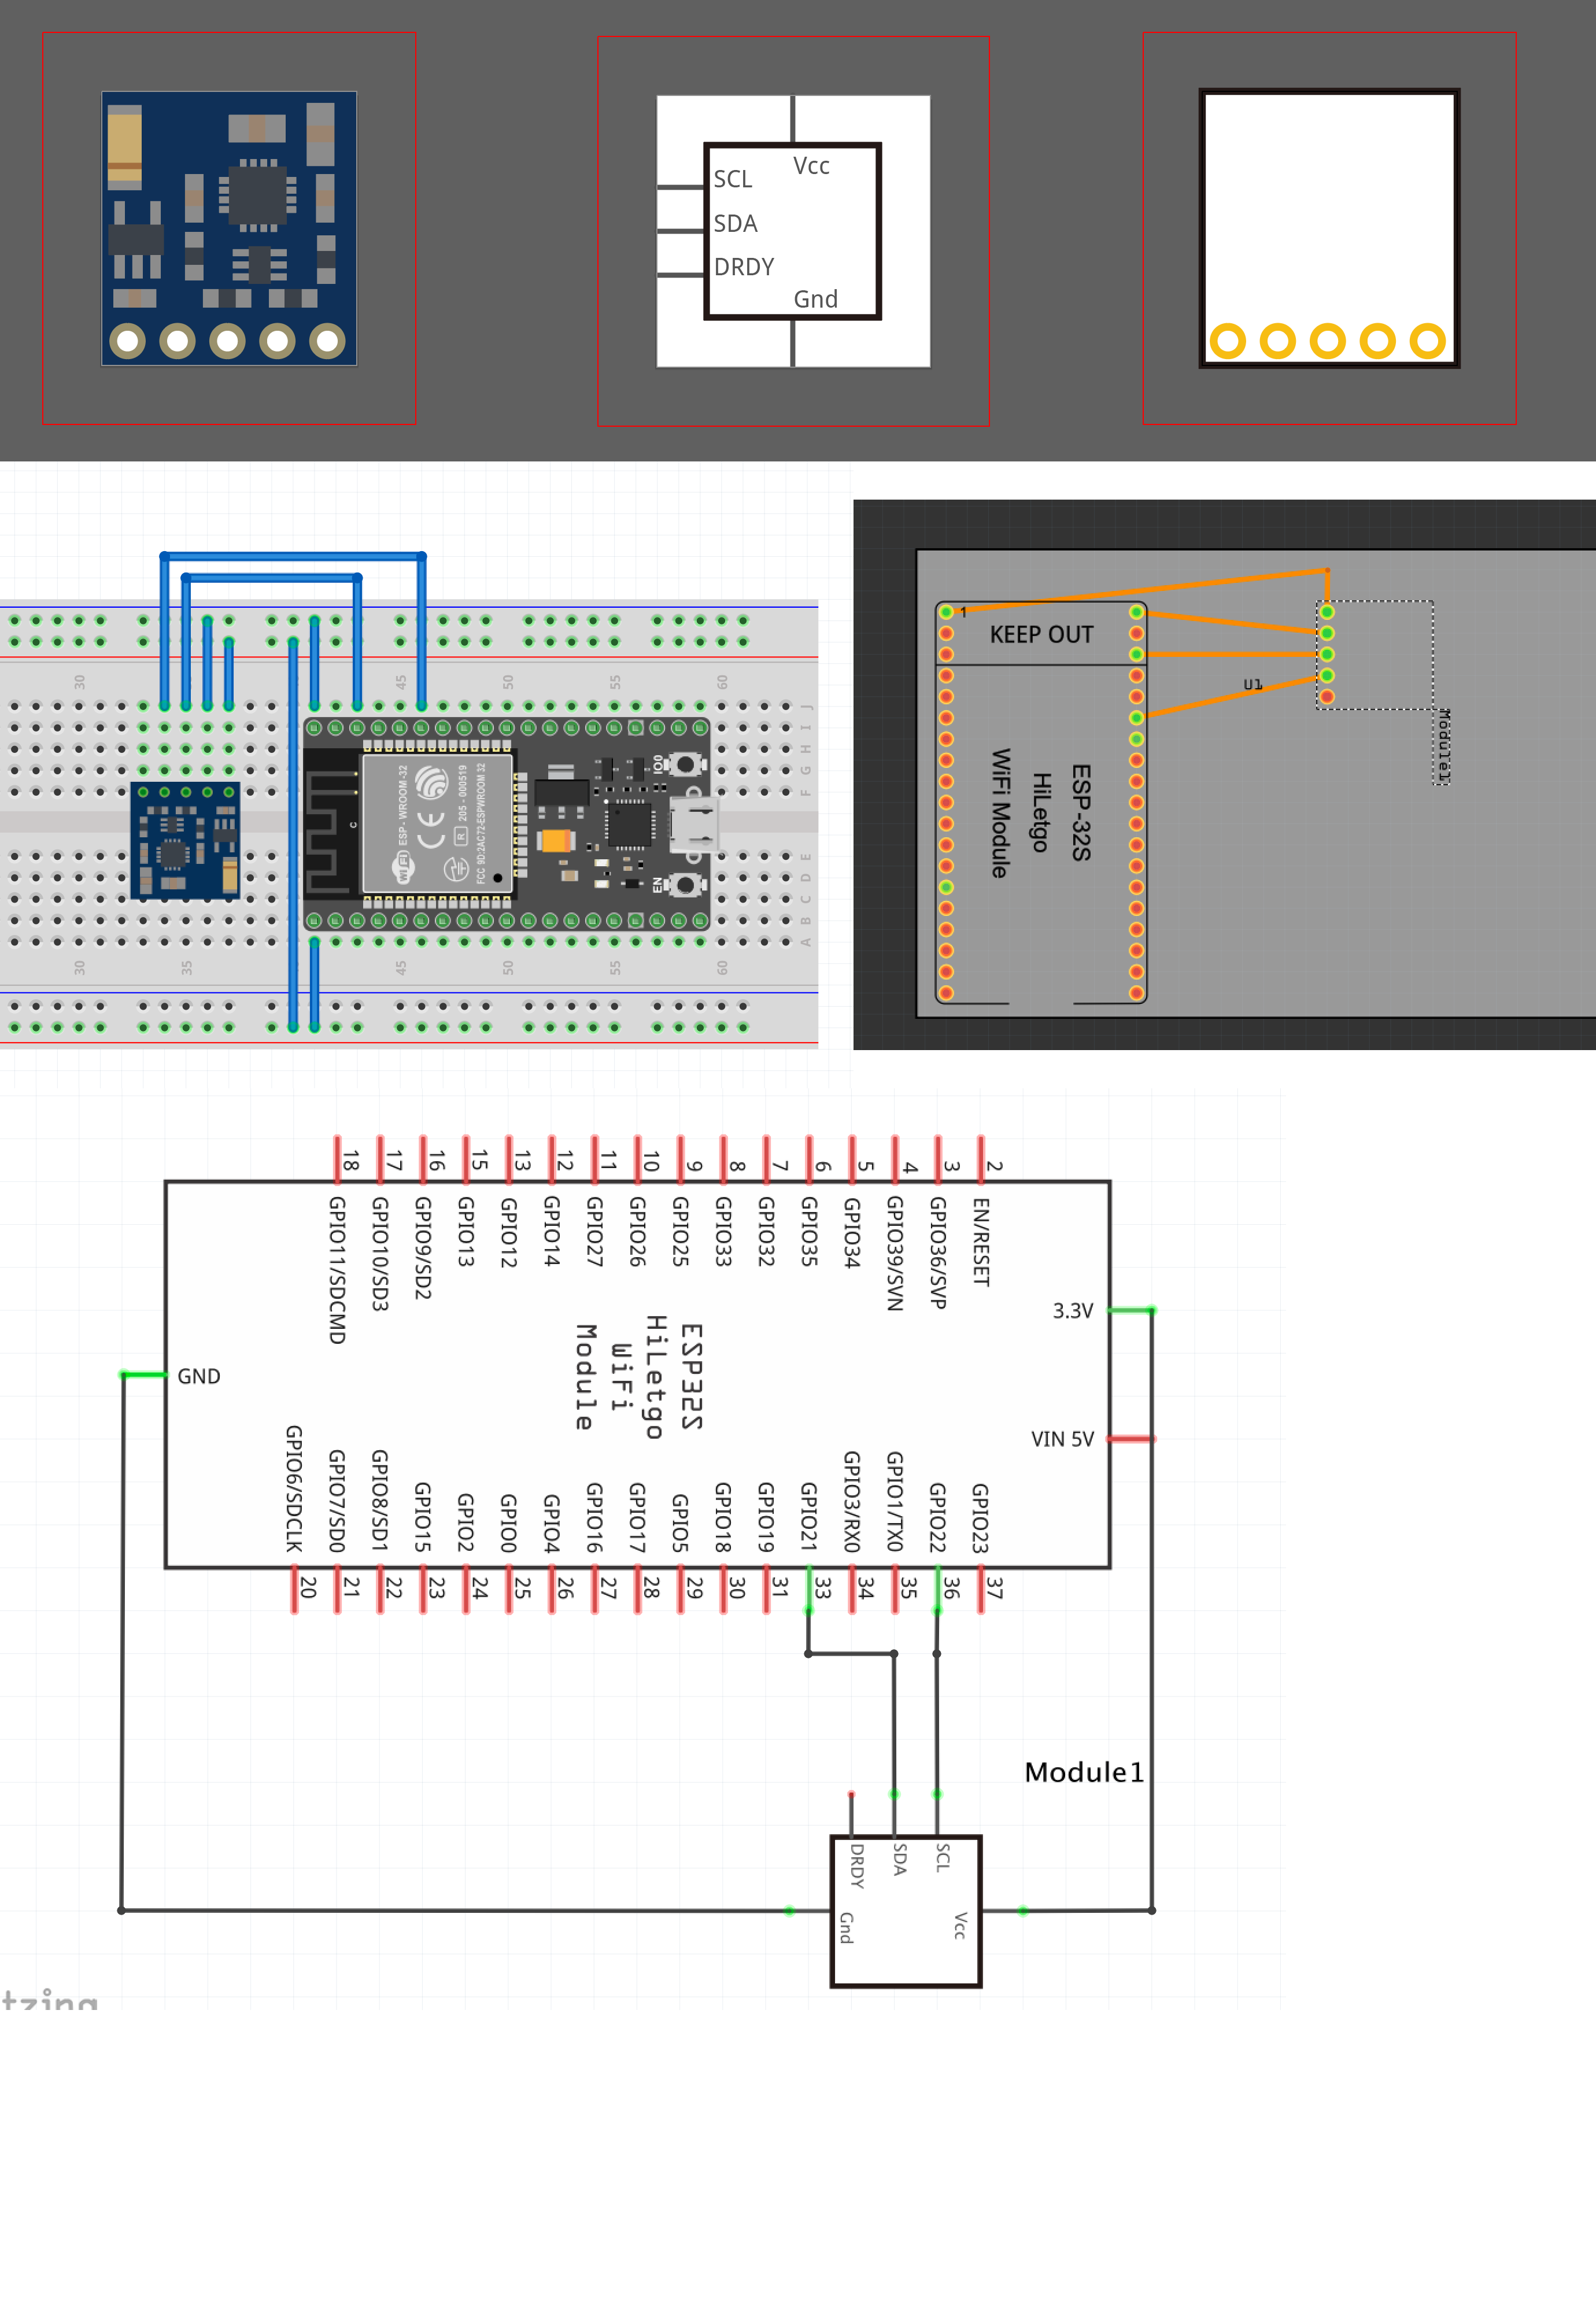 3-Axis Compass GY-271 QMC5883L - parts submit - fritzing forum